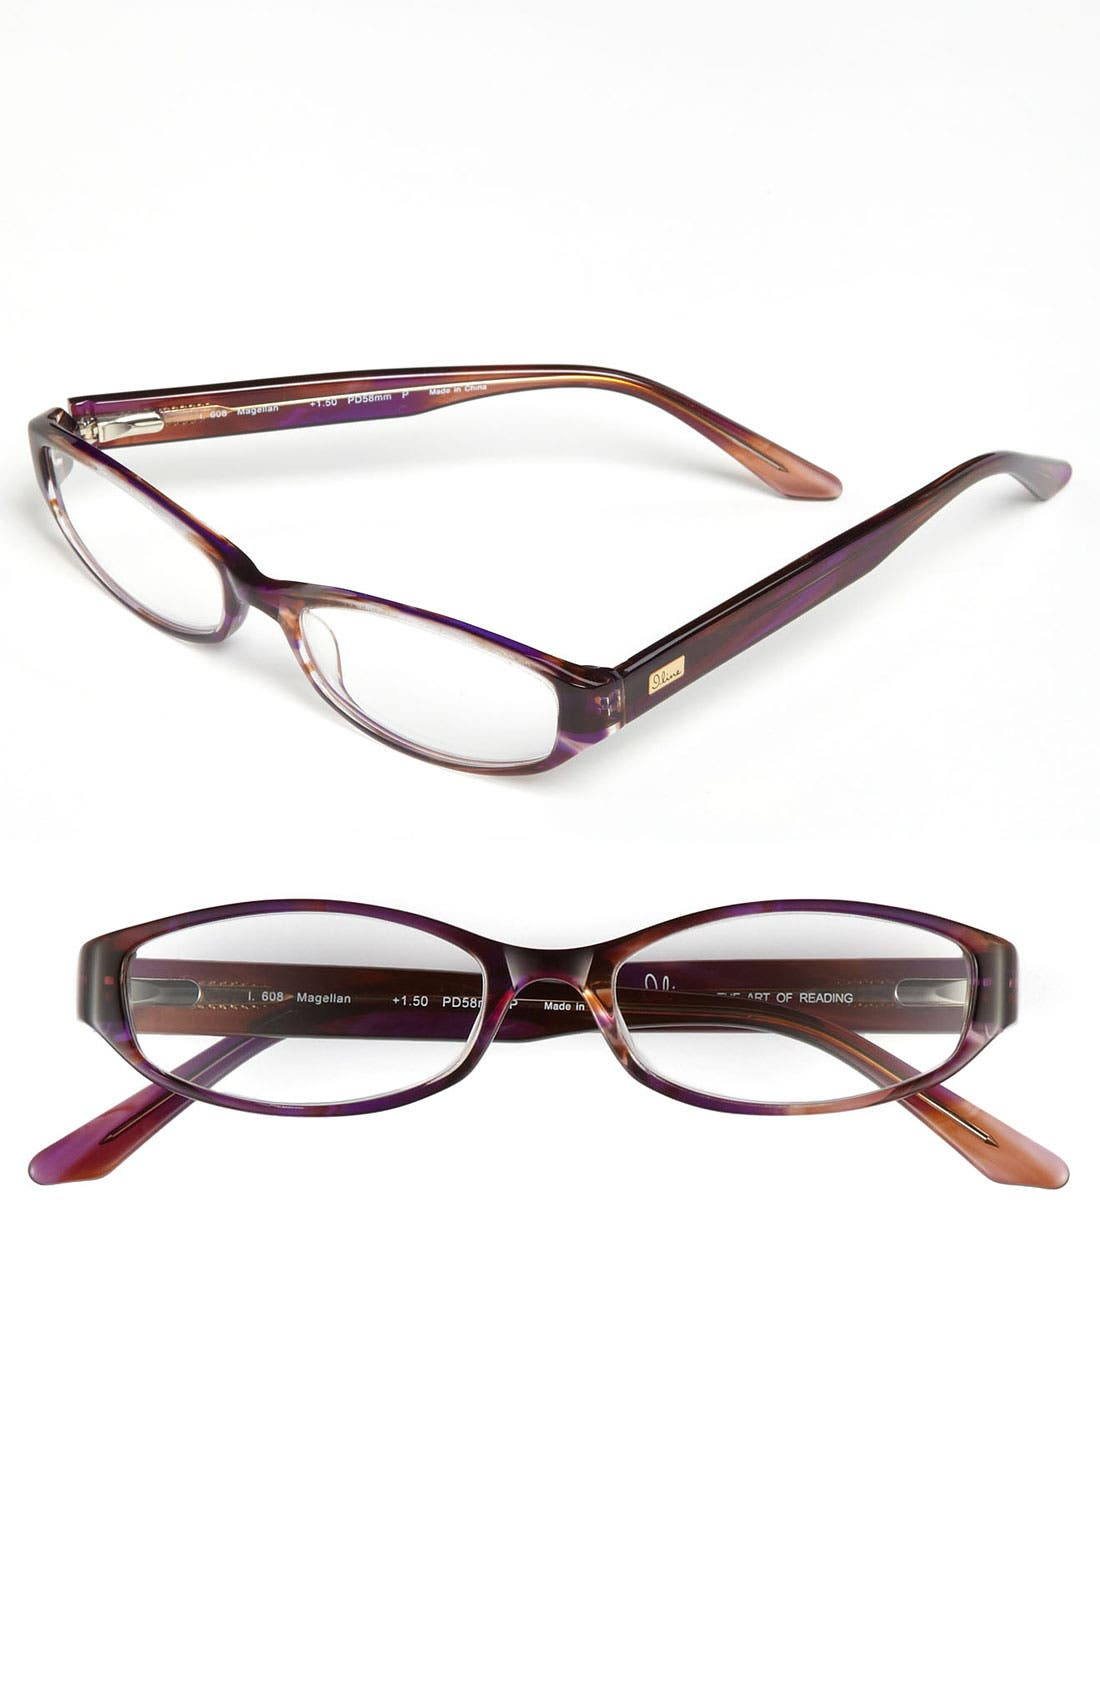 Alternate Image 1 Selected - I Line Eyewear 'Magellan' Reading Glasses